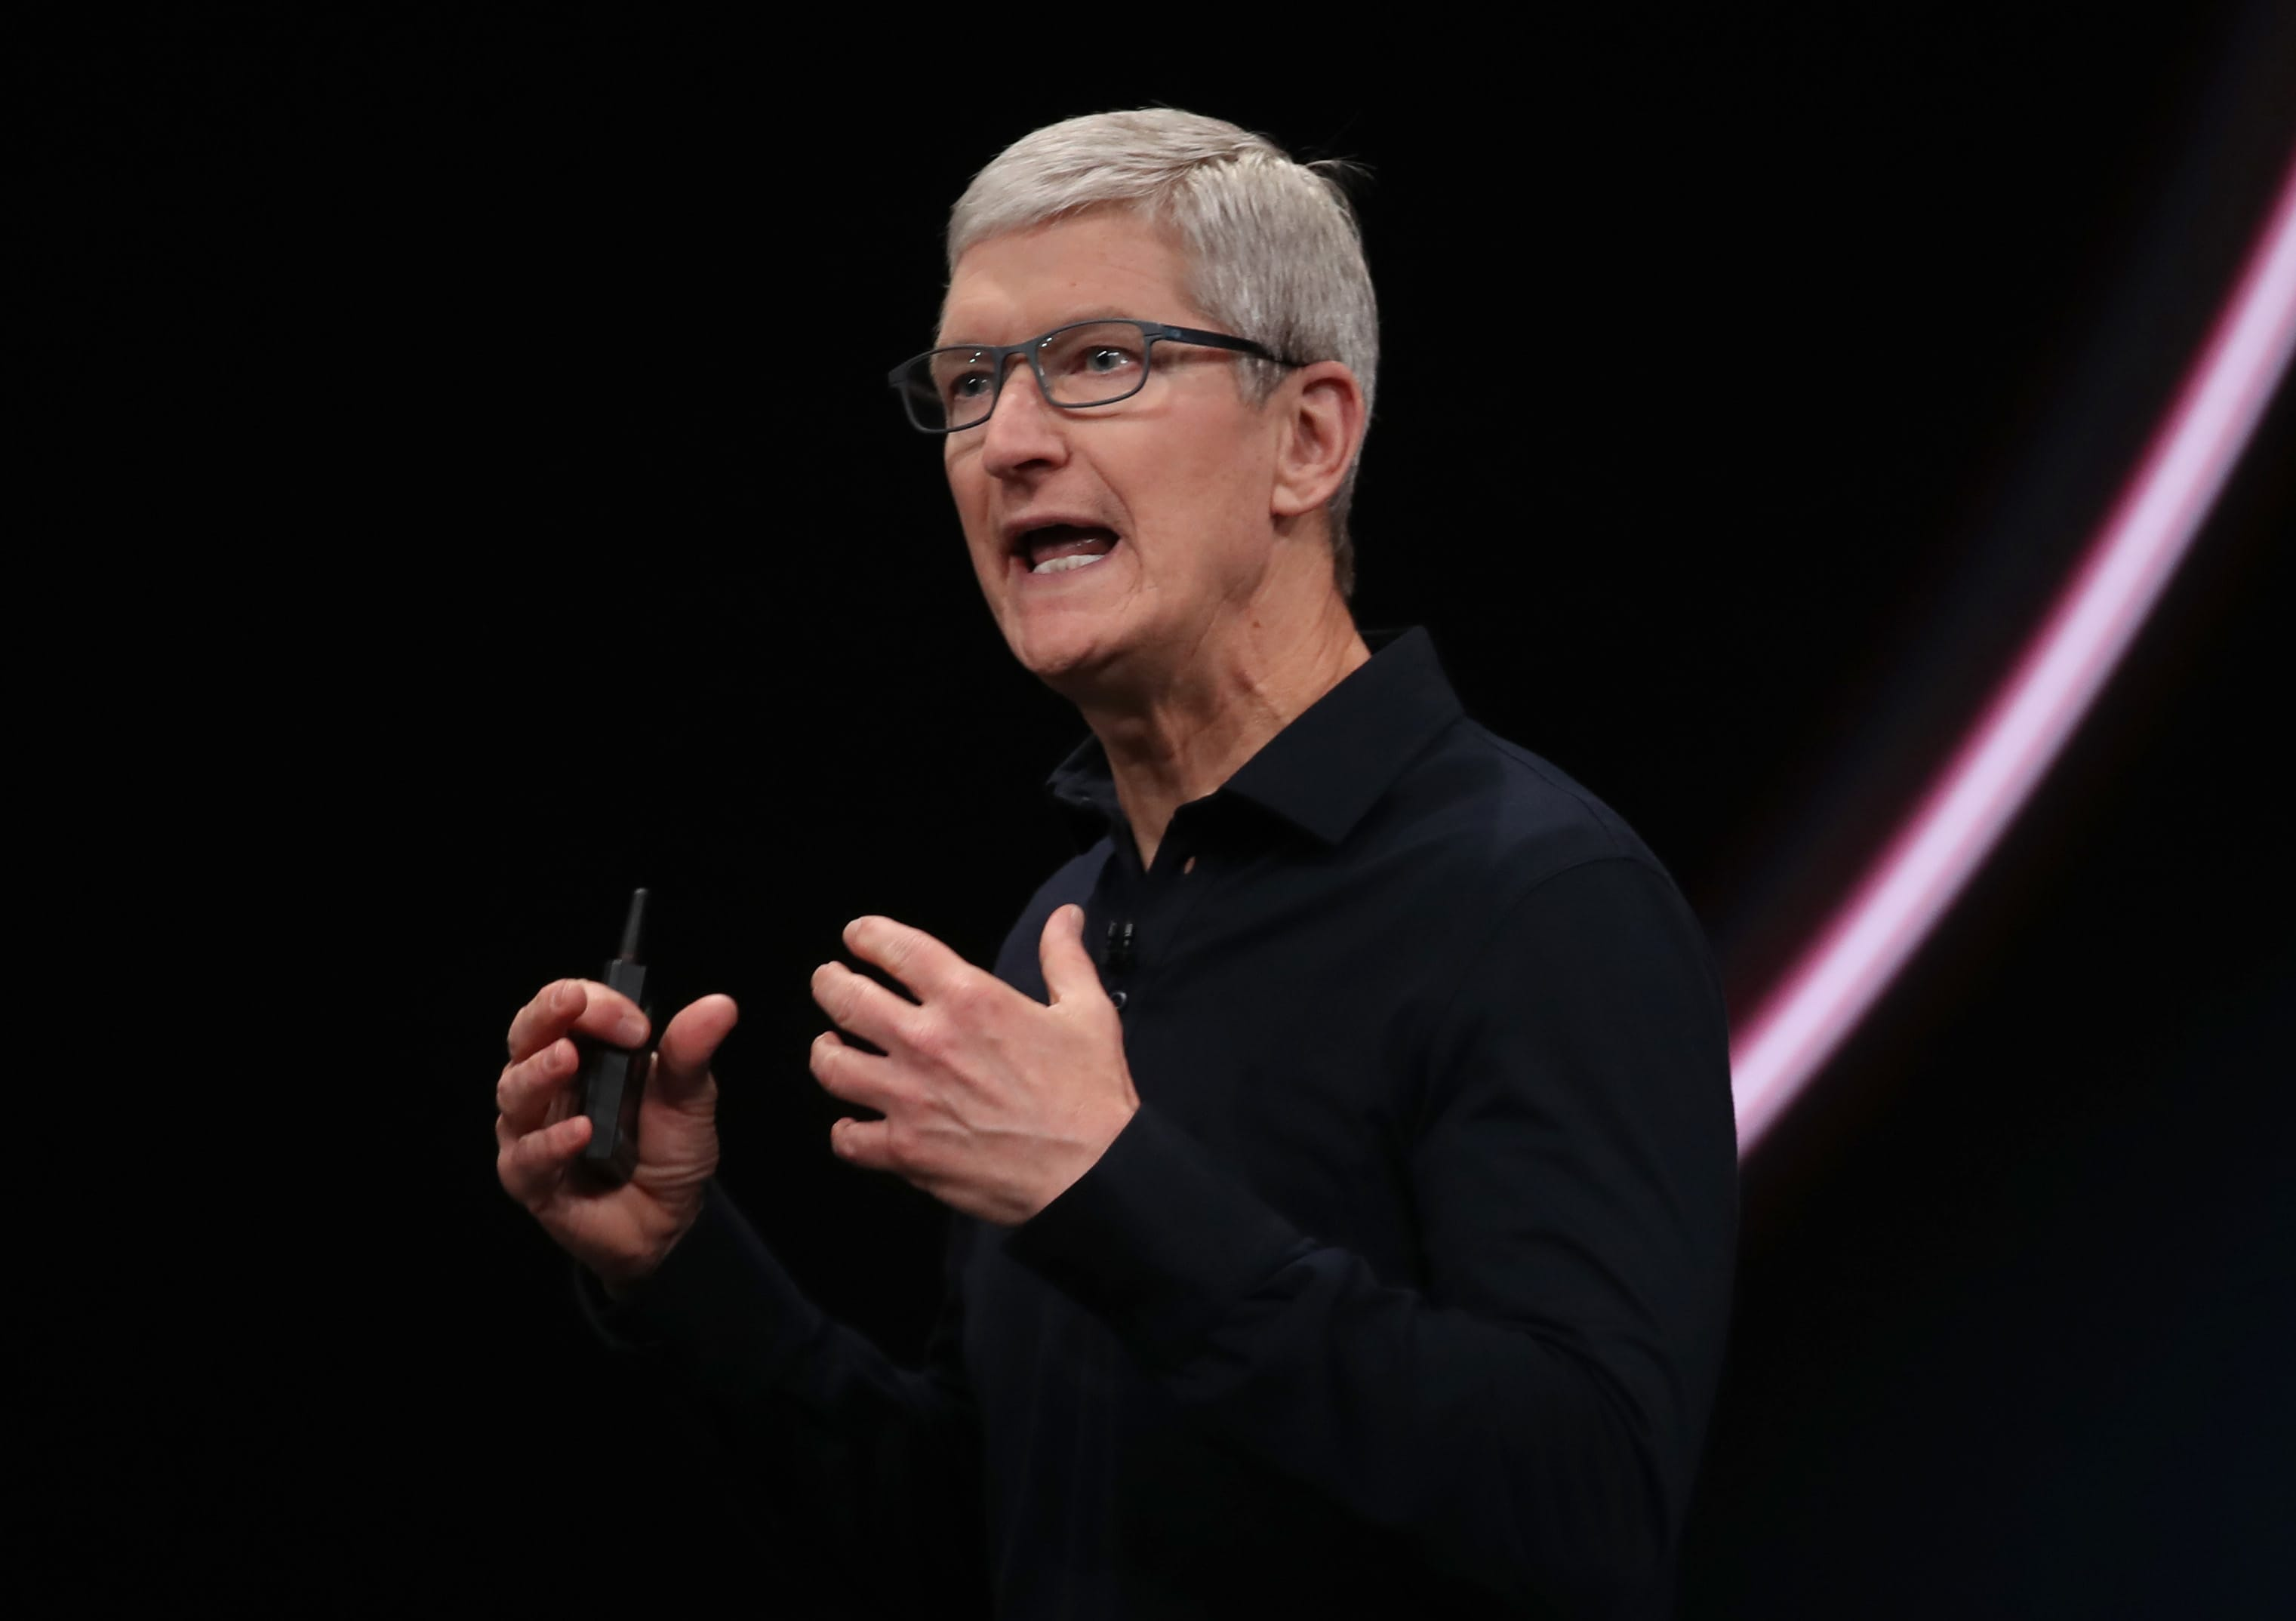 Tim Cook says Apple is not a monopoly as the government begins its antitrust probe